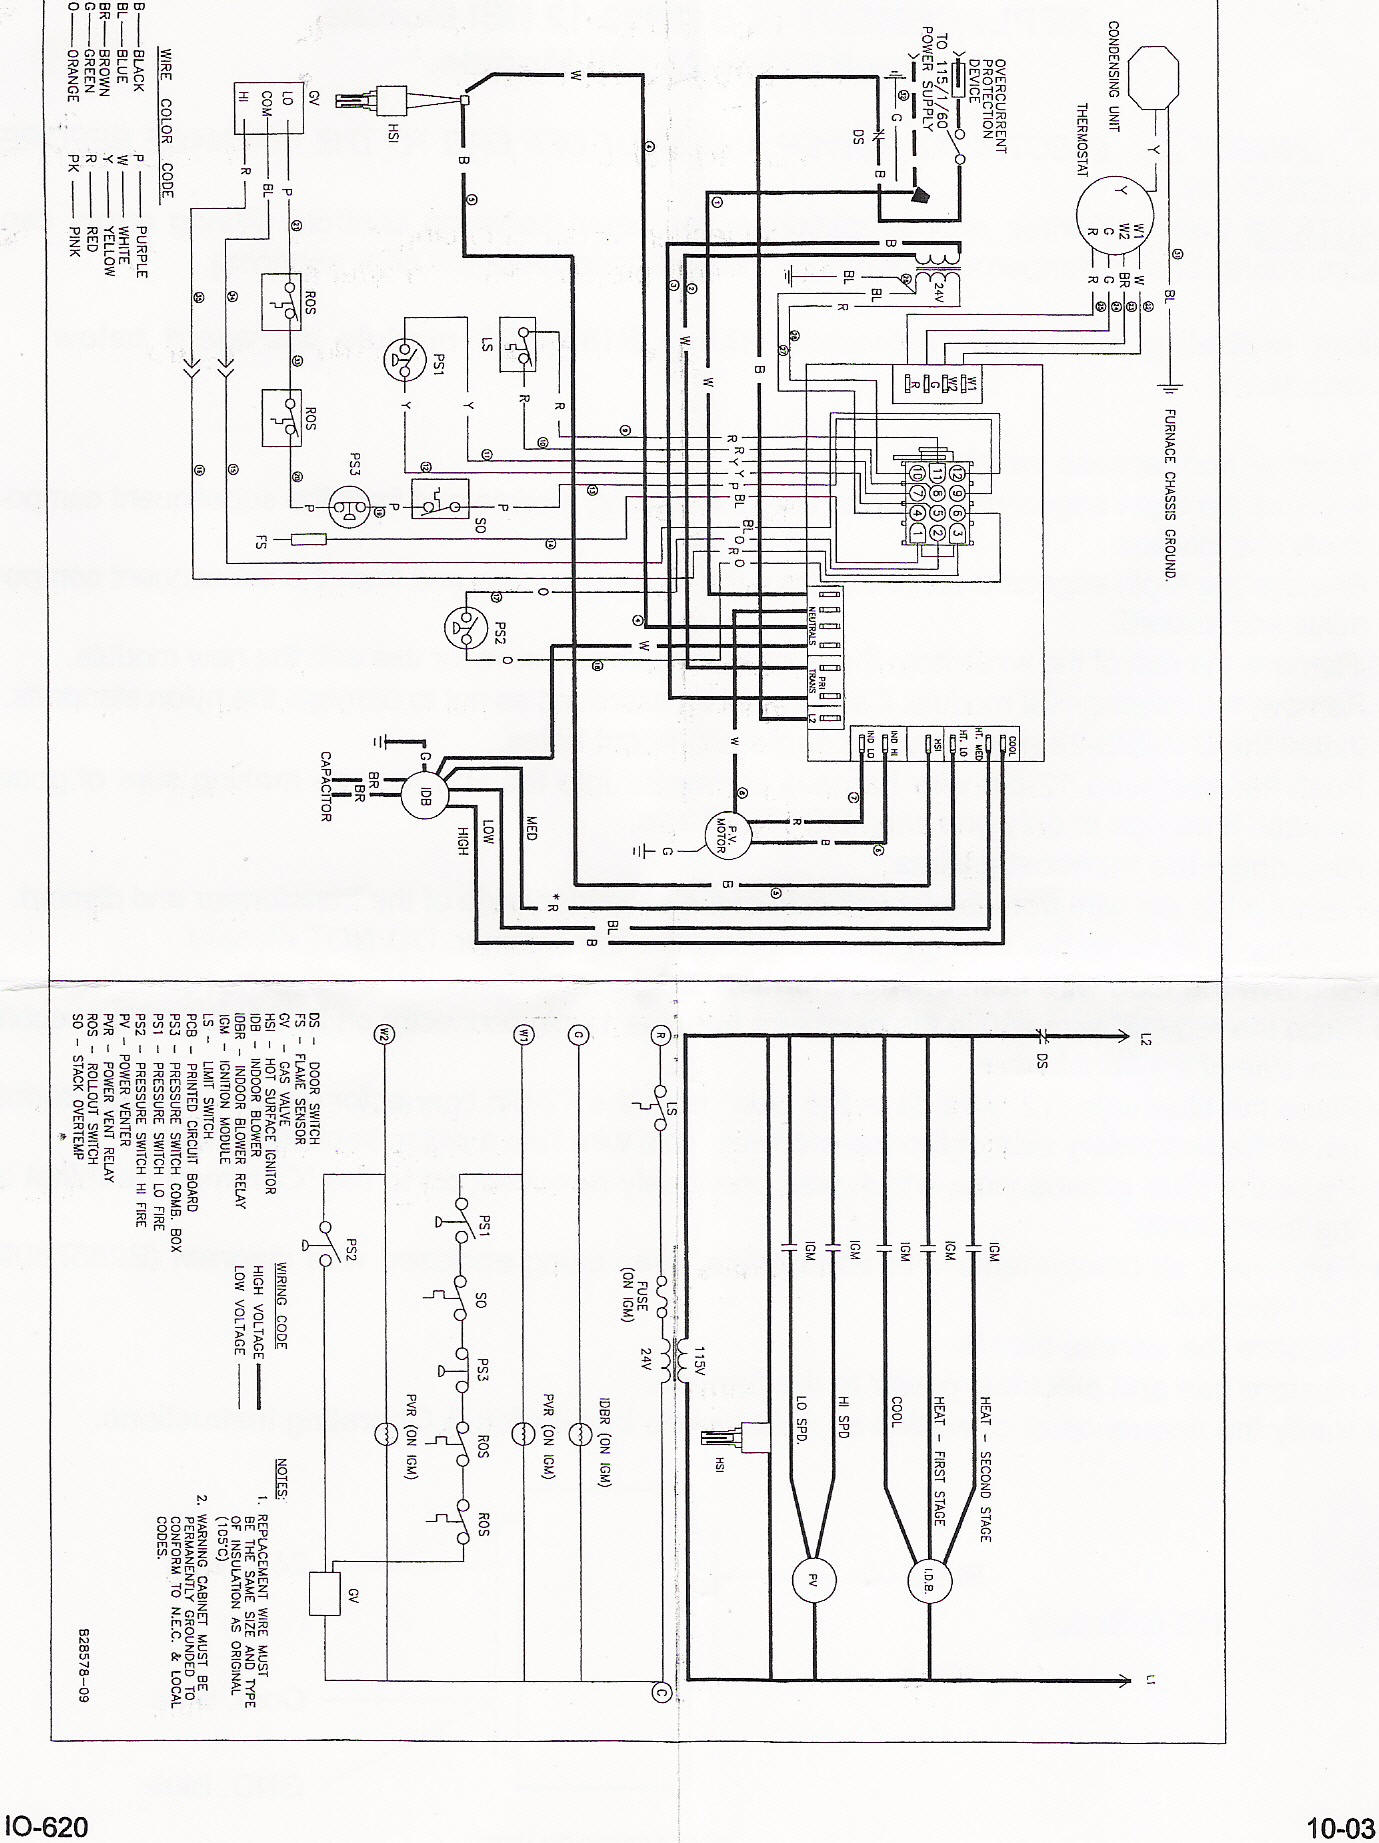 goodma2 instr goodman control board b18099 23 instructions goodman package unit heat pump wiring diagram at gsmx.co